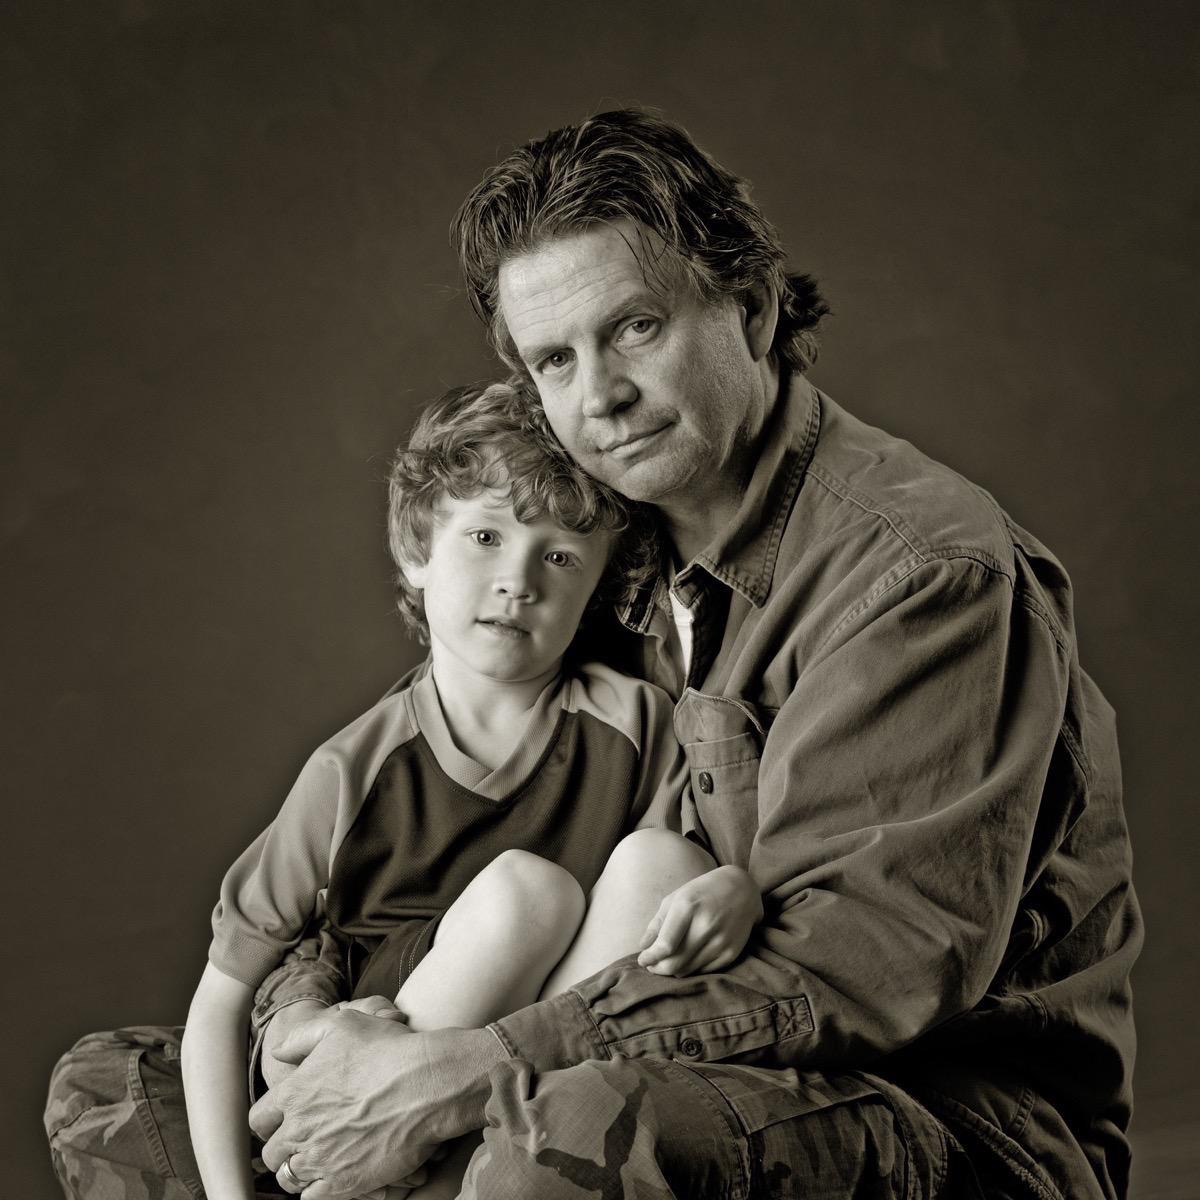 Father like Son - Portrait Photographer - Rapid City, SD by Kevin Eilbeck